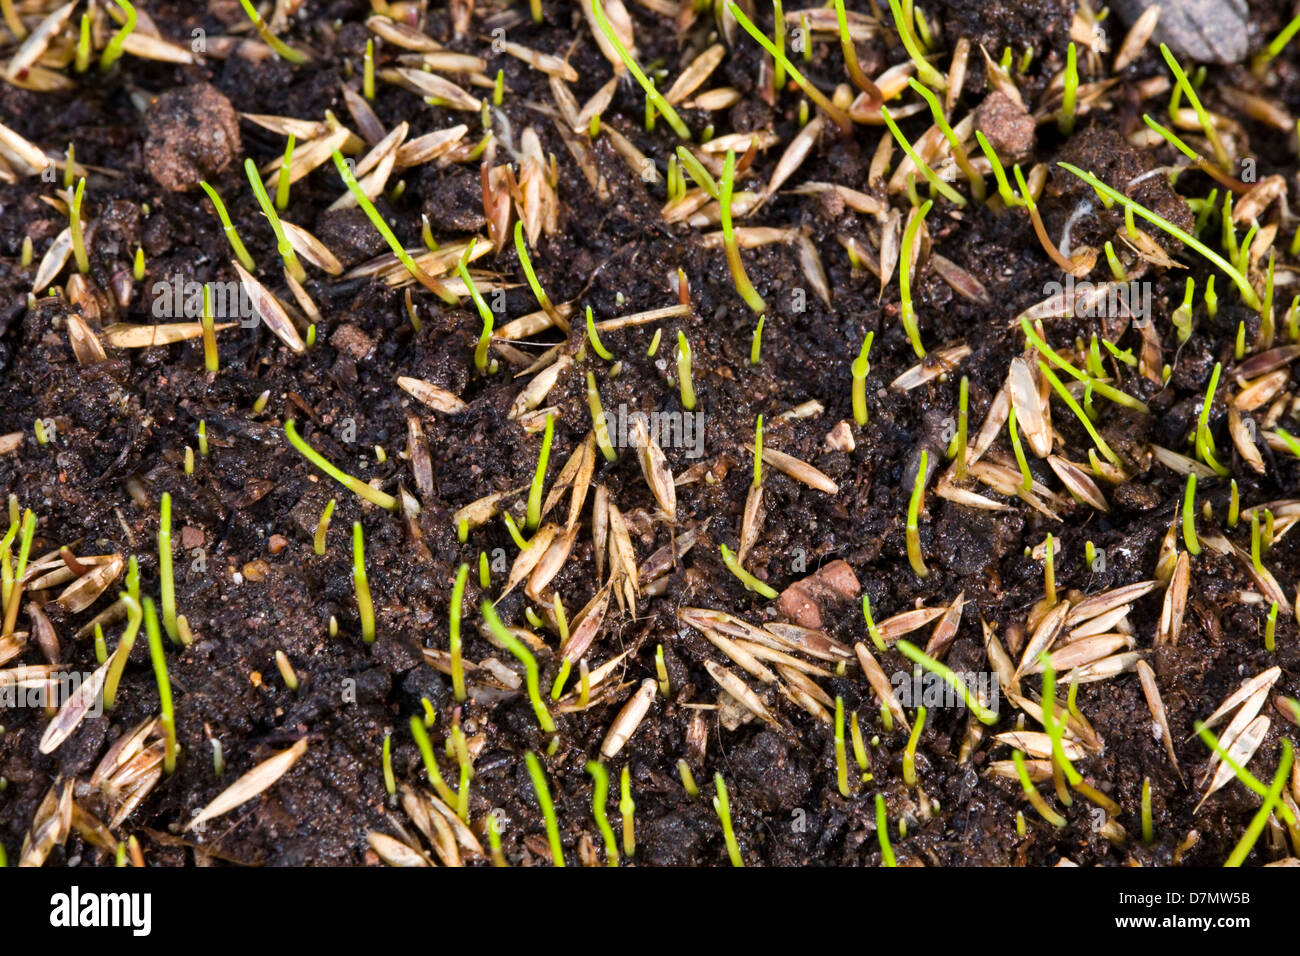 Germination Of Grass Seeds Germinating After Being Sown On